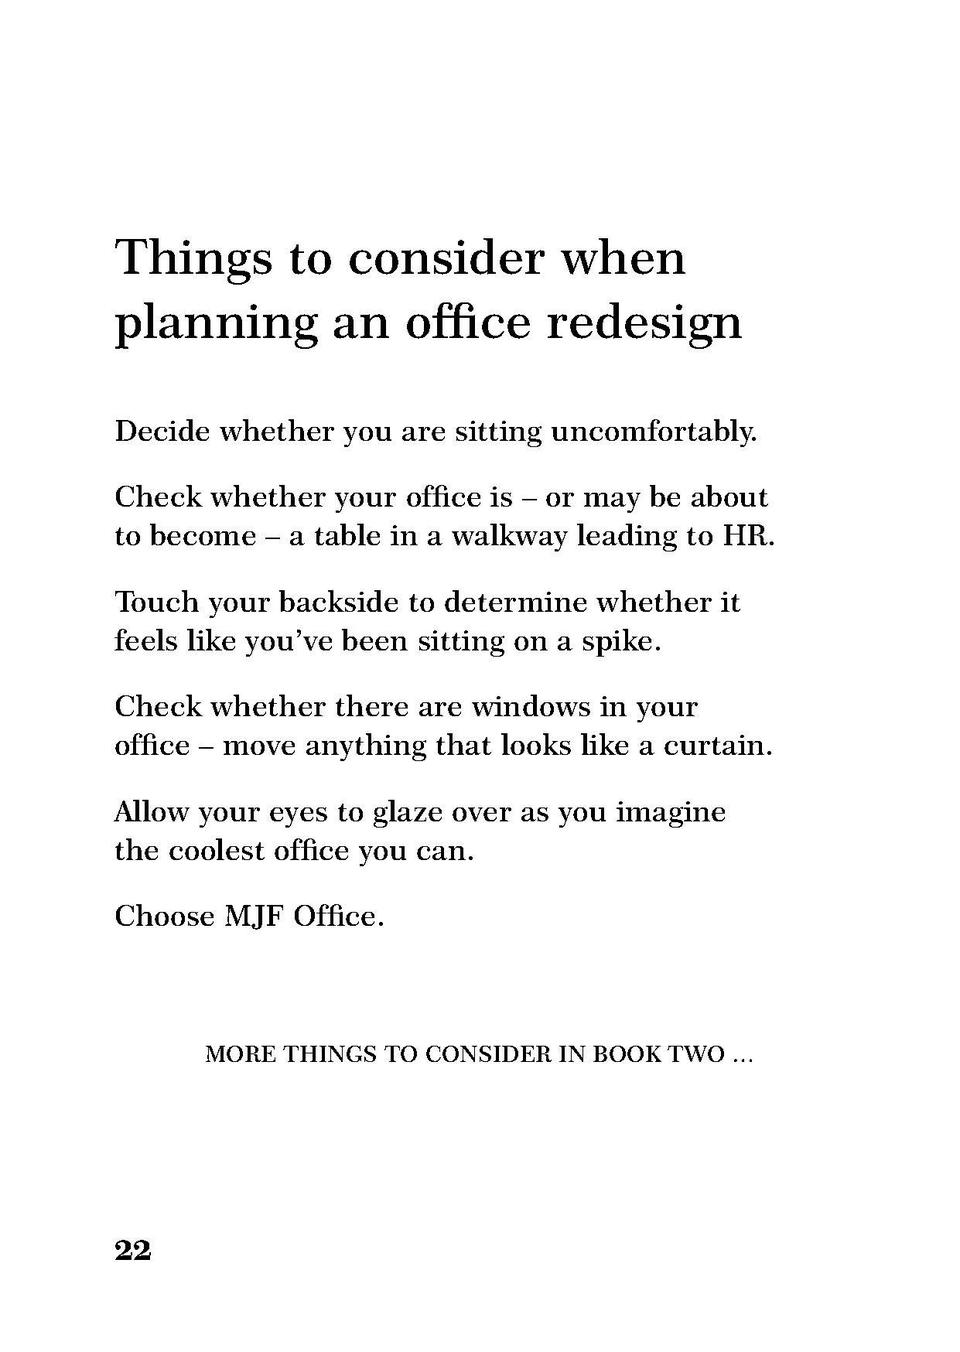 Things to consider when planning an office redesign Decide whether you are sitting uncomfortably.  Check whether your offi...